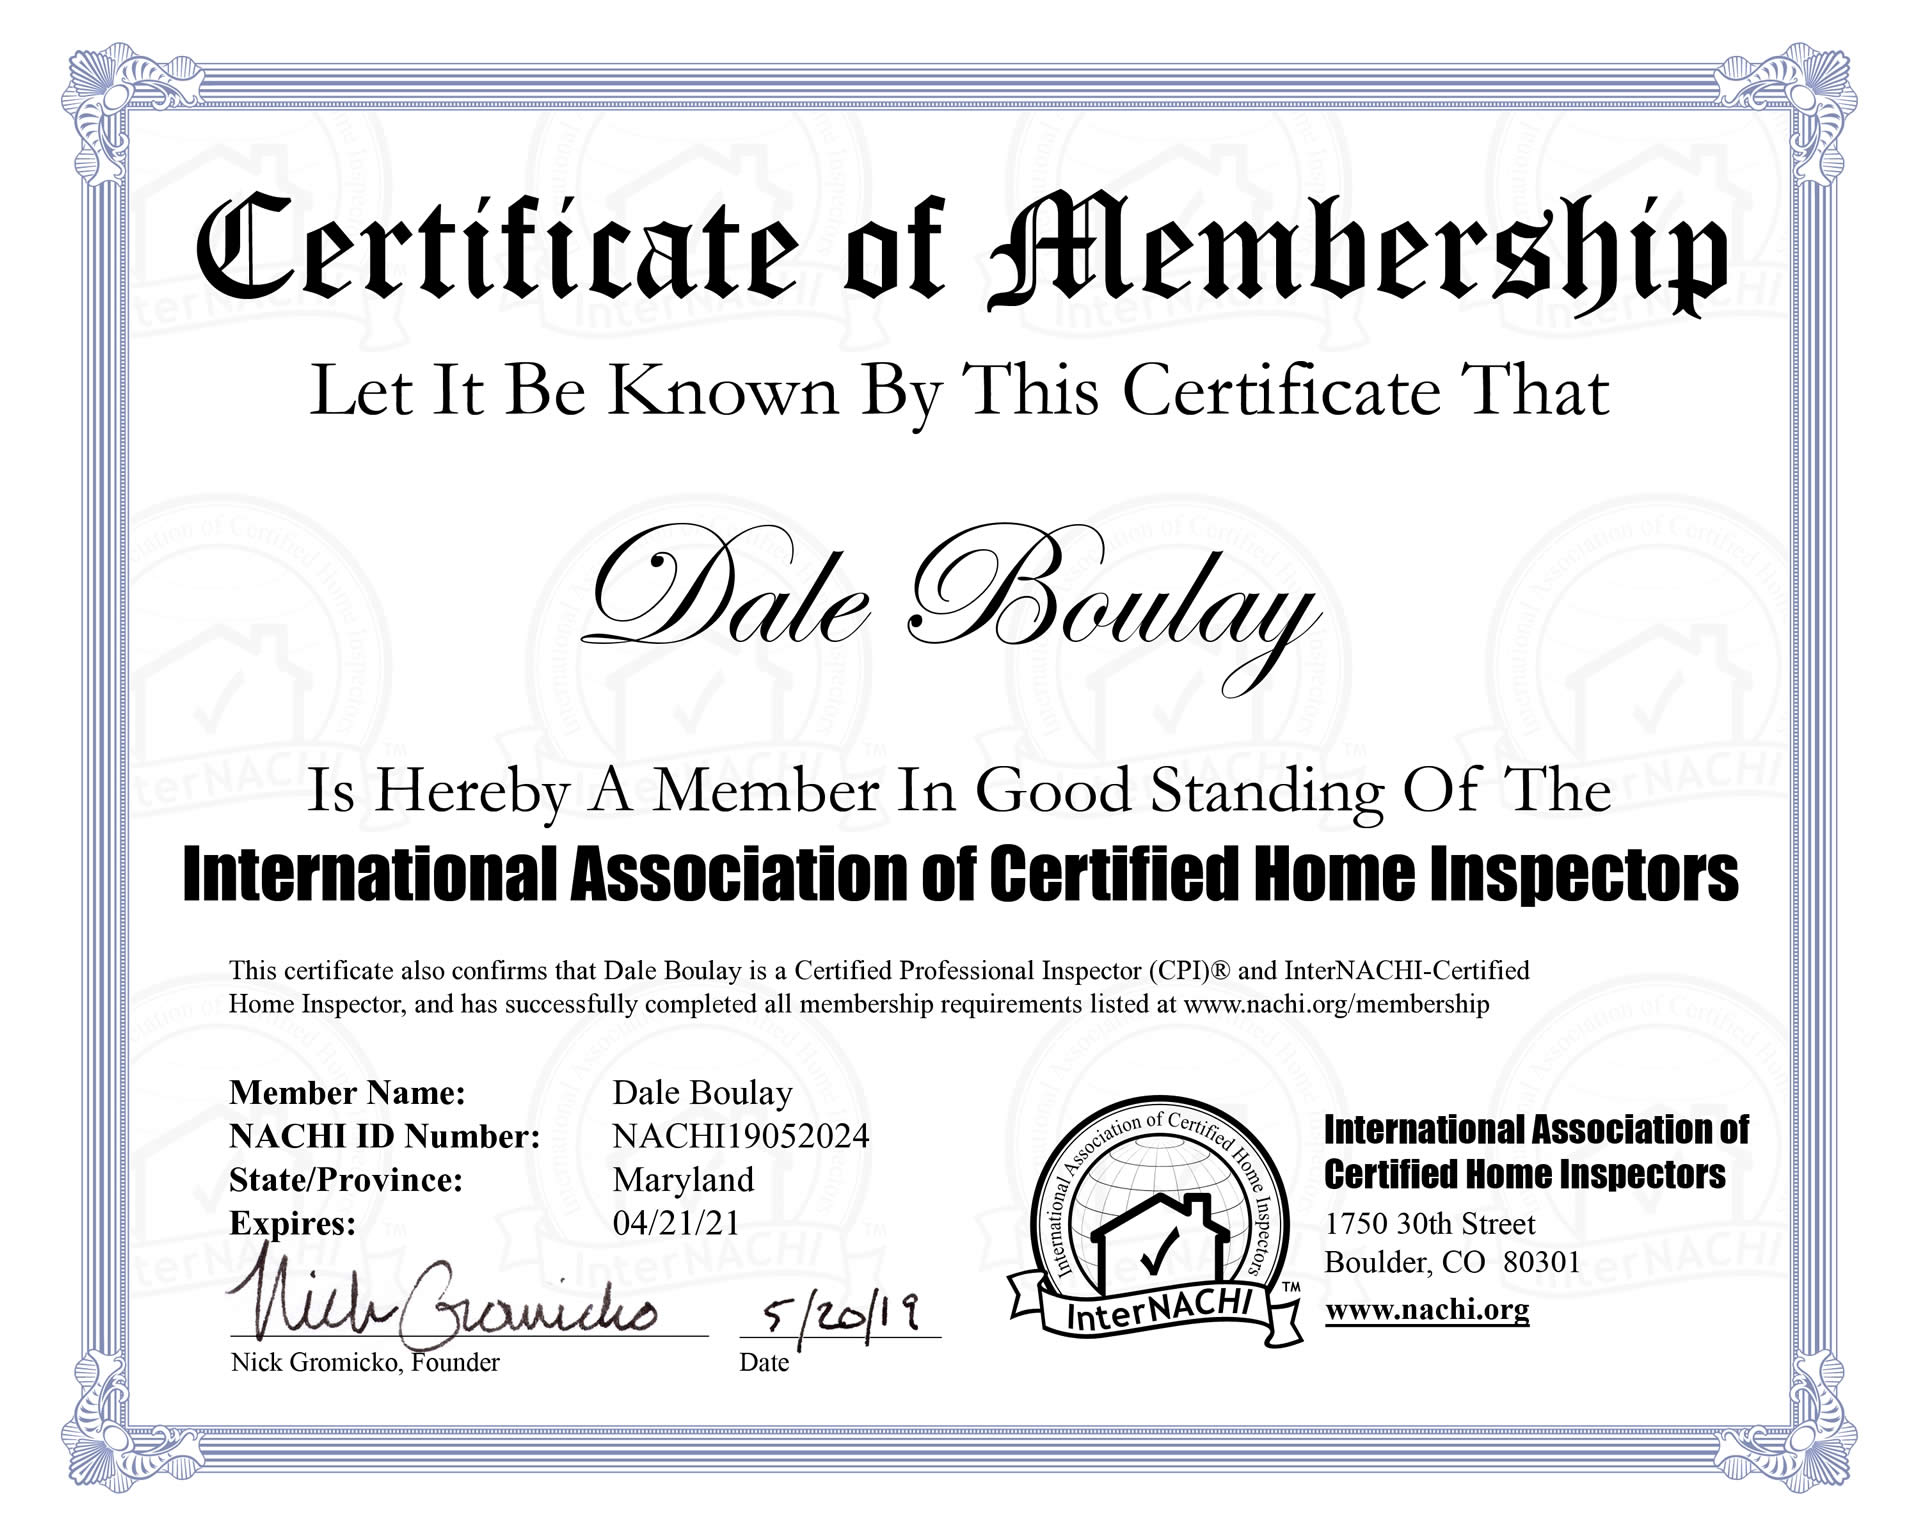 InterNACHI Certificate of Membership Maryland